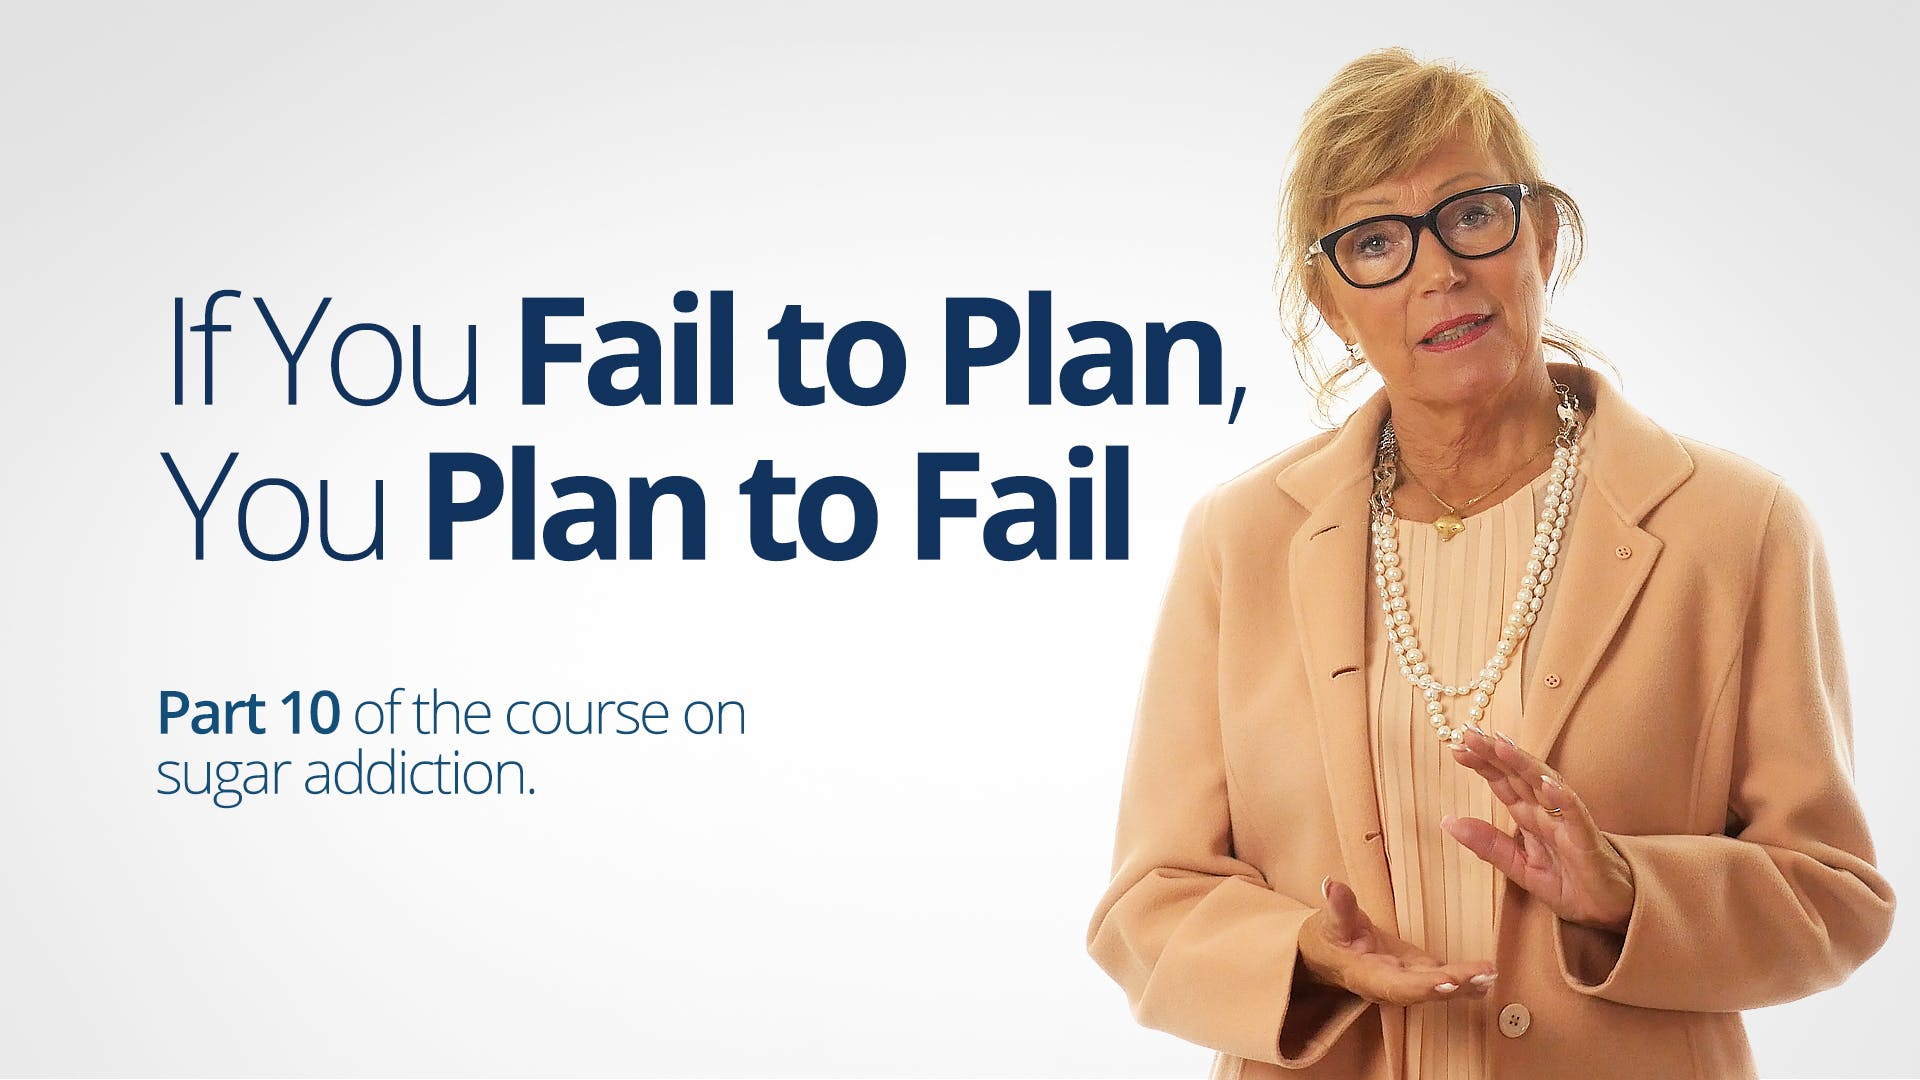 If You Fail to Plan, You Plan to Fail - Bitten Jonsson, RN